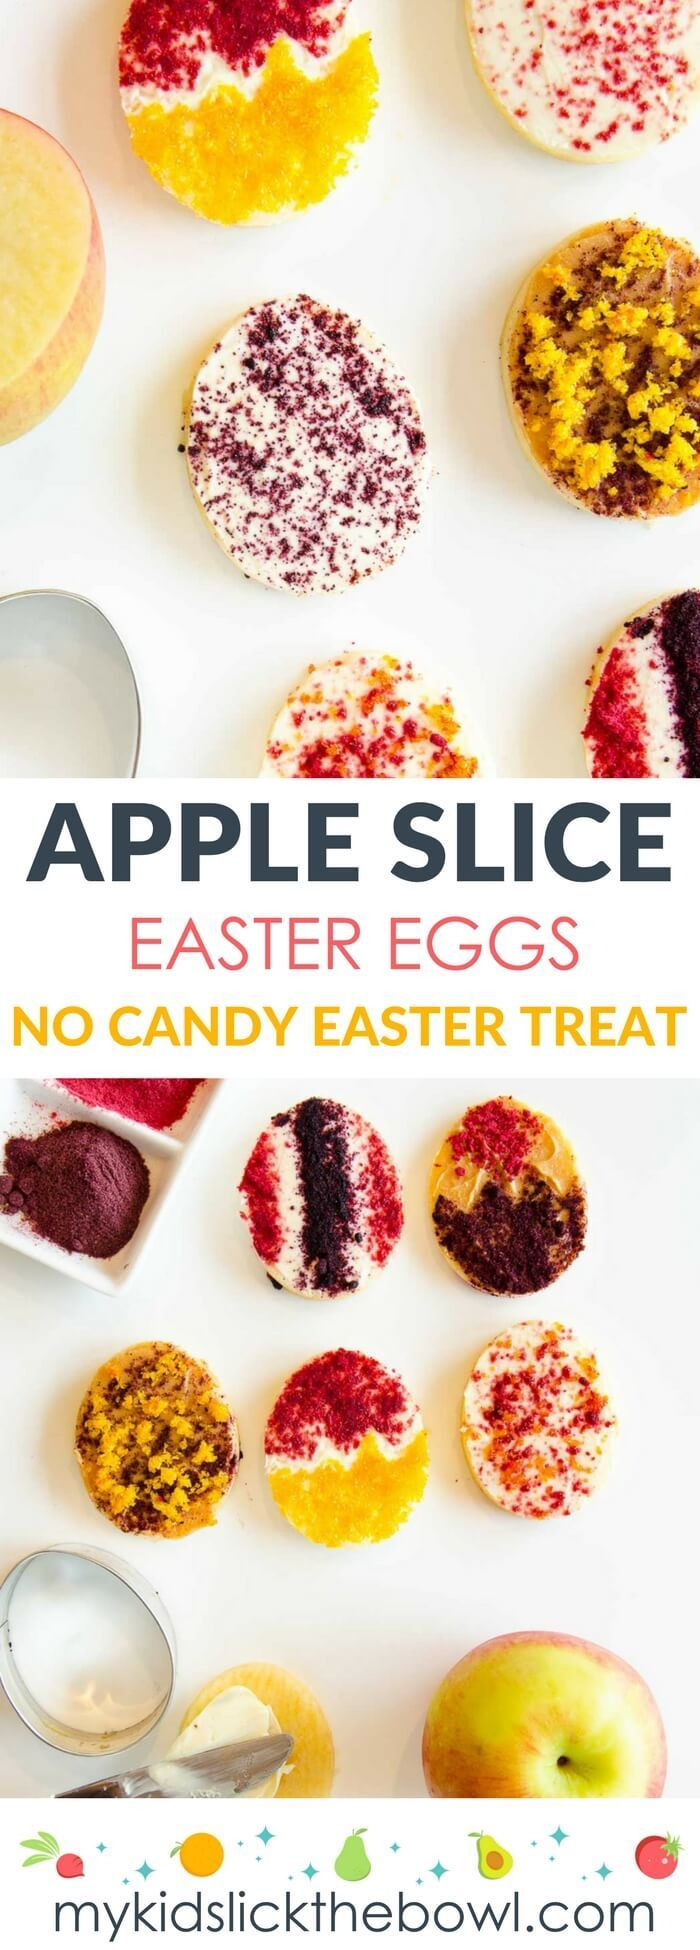 Healthy easter treats, apple slice easter eggs a snack and holiday craft activity for kids. Freeze dried fruits add the colour